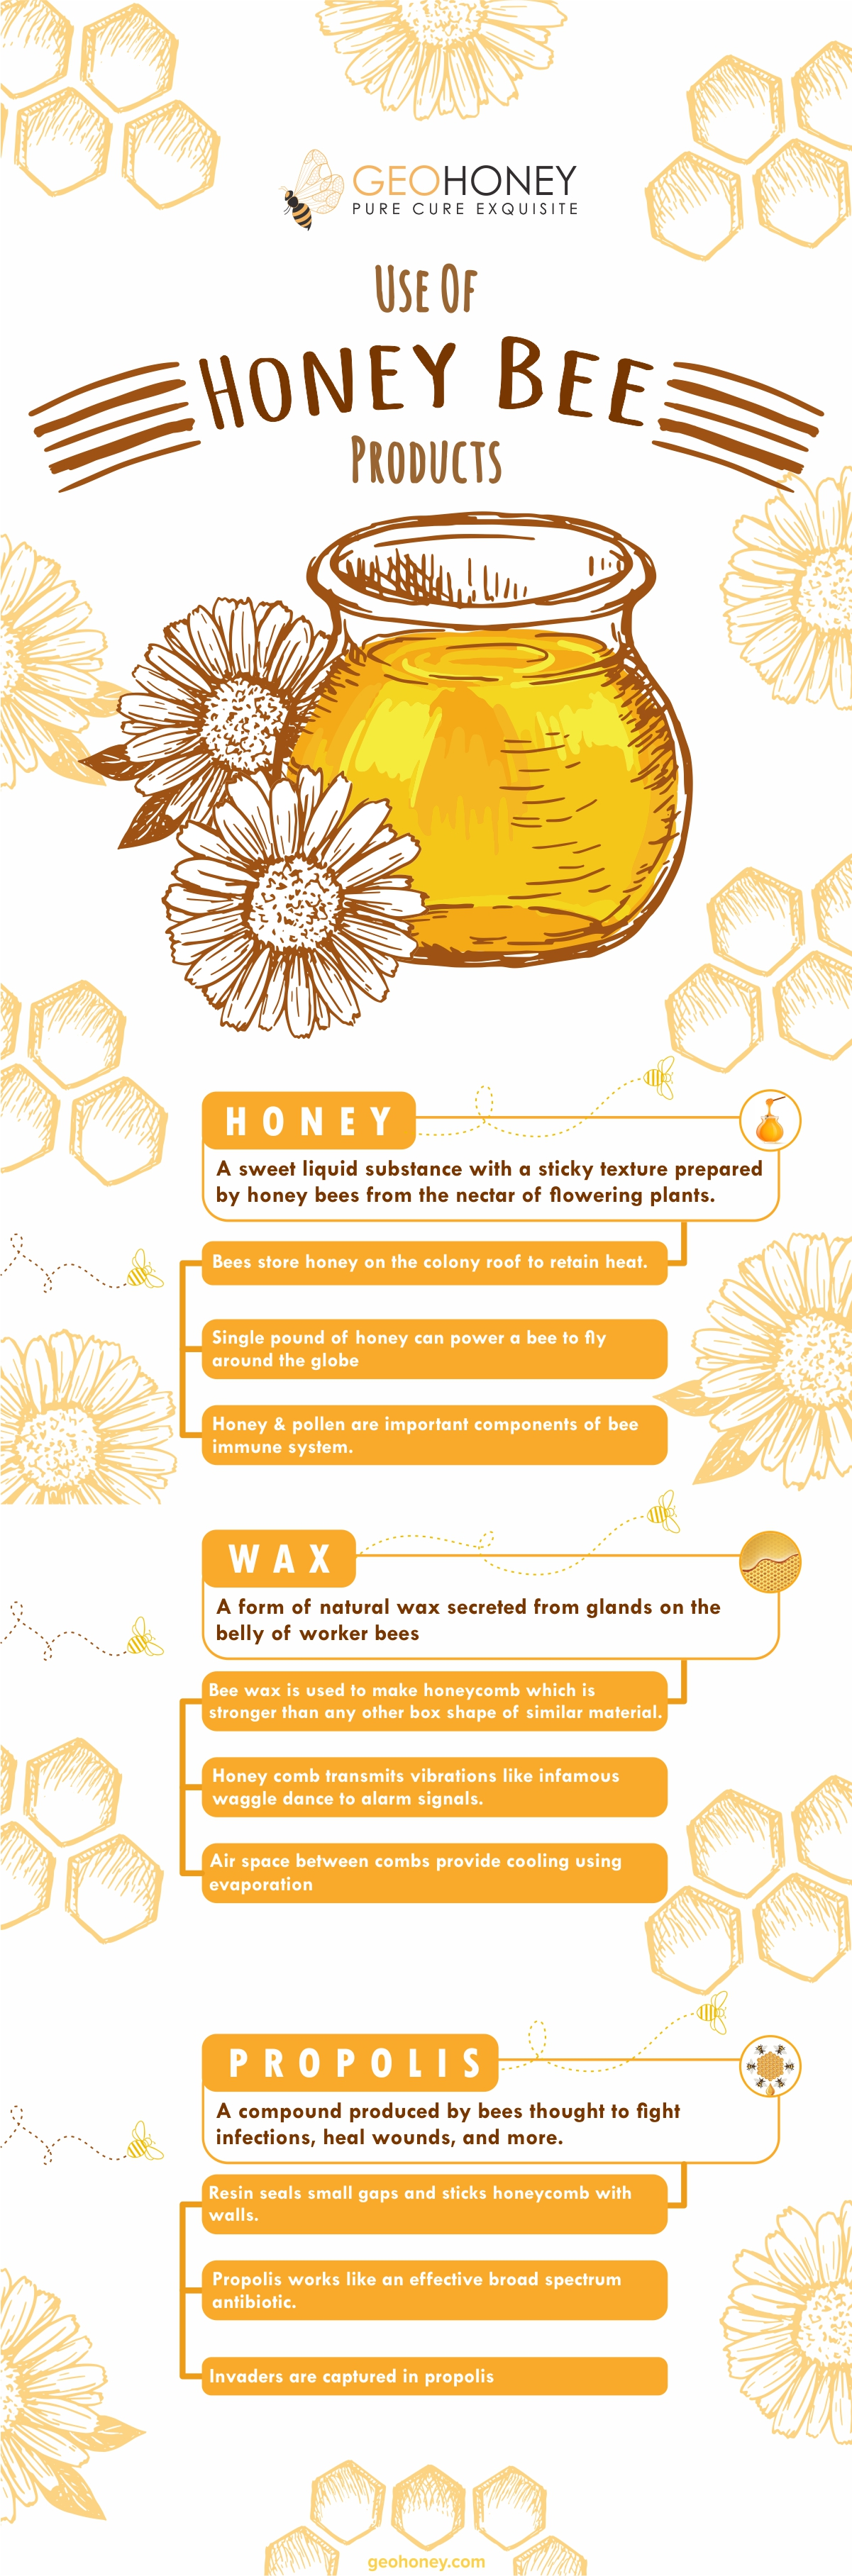 Use Of Honey Bee Products-Geohoney